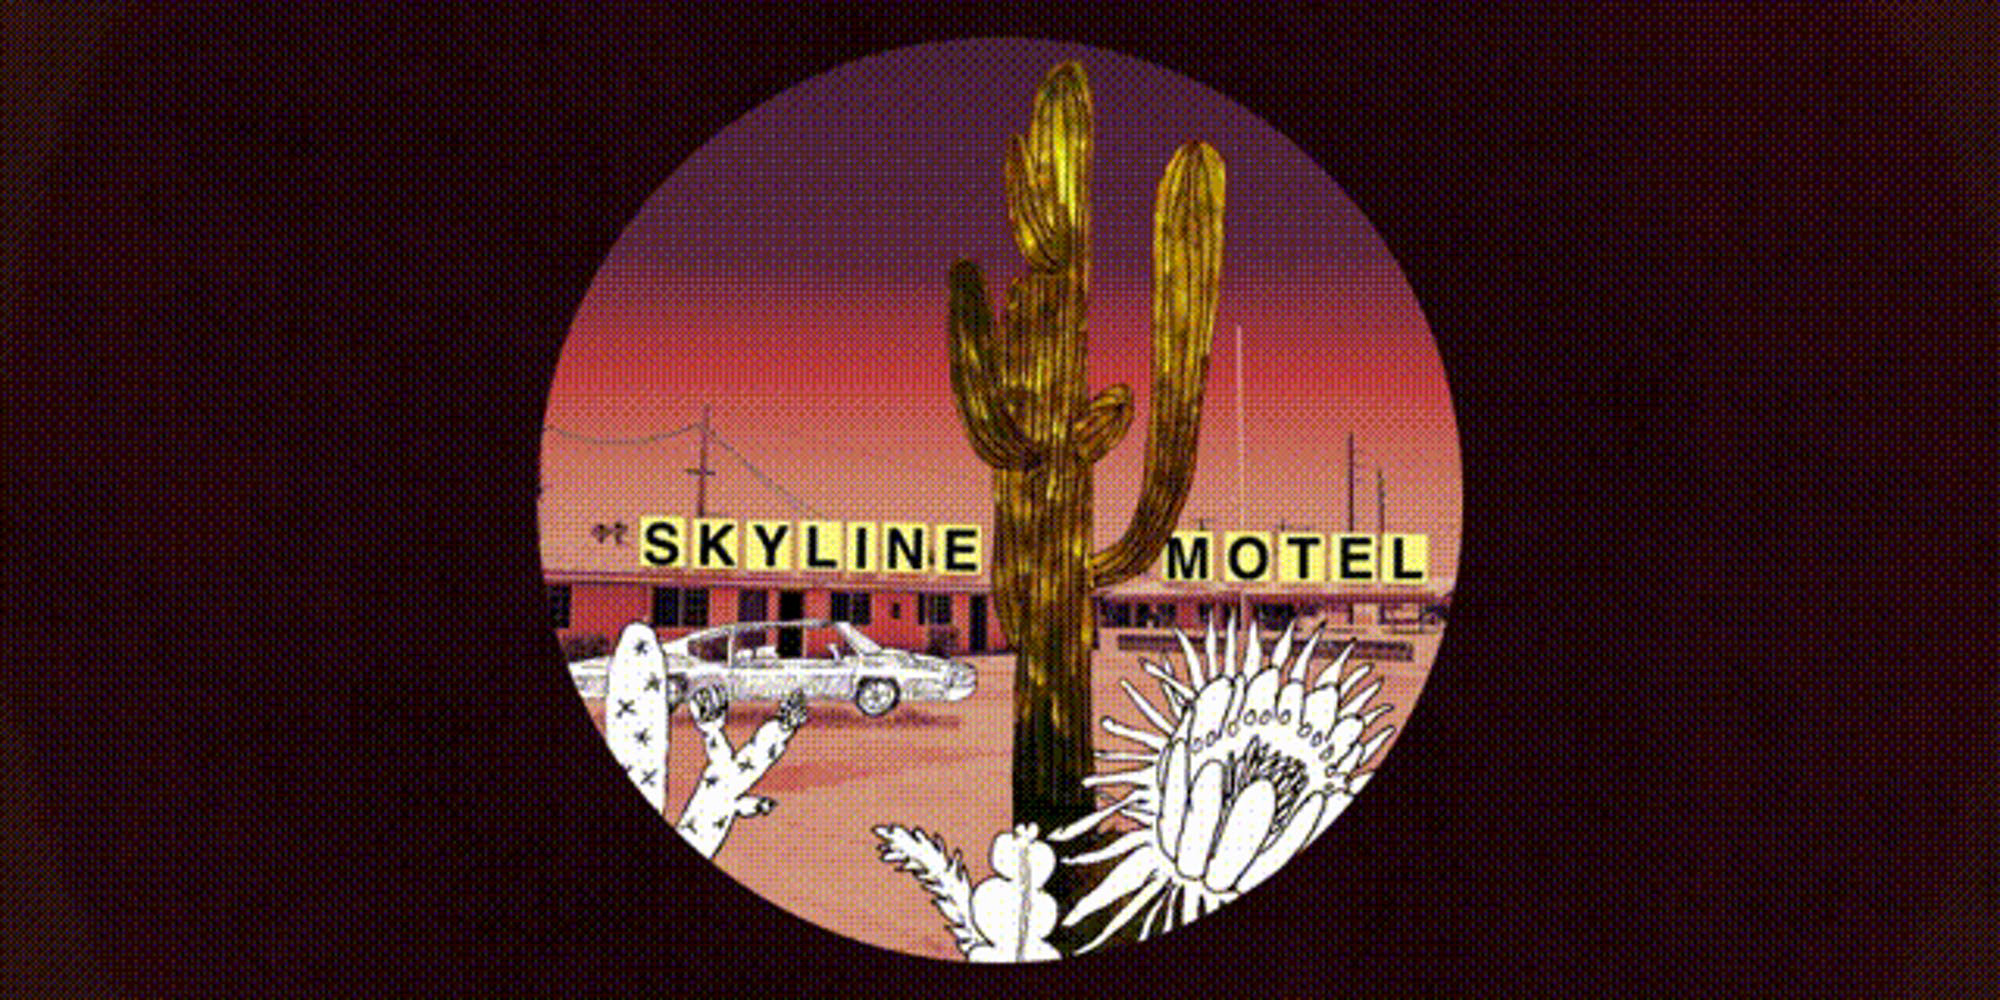 Hot off an extended tour of Scandinavia, Redlight Ranch will take a victory lap at the  The Hideout Toronto , performing their debut album Skyline Motel.  Redlight Ranch hits the stage at 8:30 to perform Skyline Motel and more . Doors open at 7pm. Come early to buy drinks for the band.